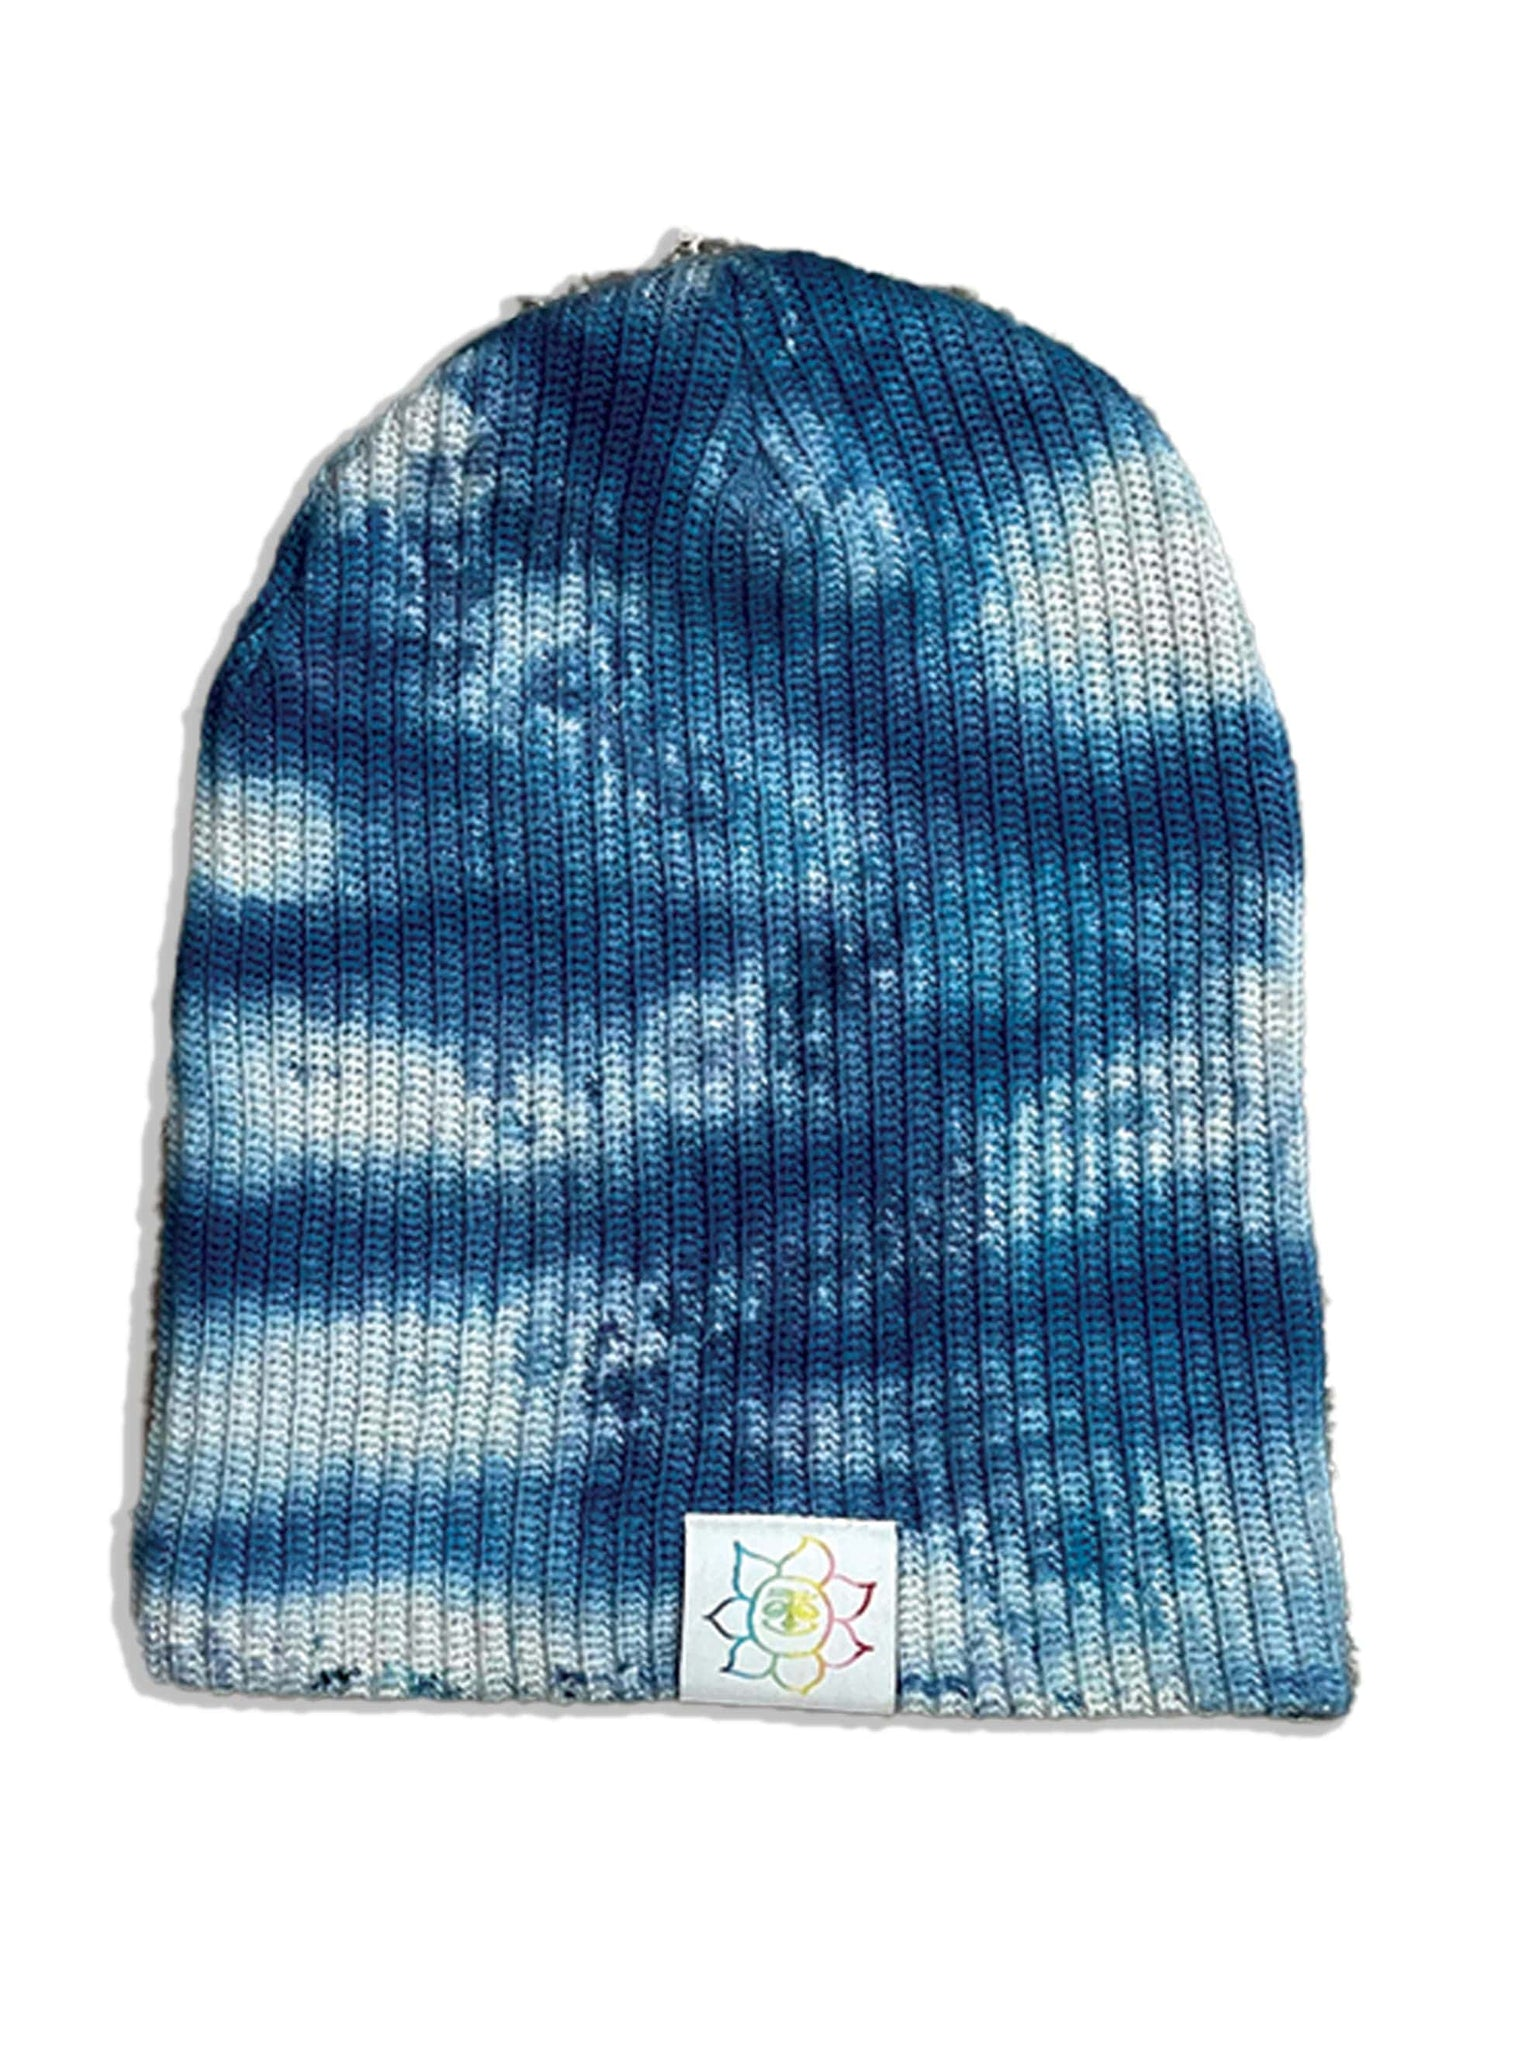 Camp High Indigo Ice dyed Beanie